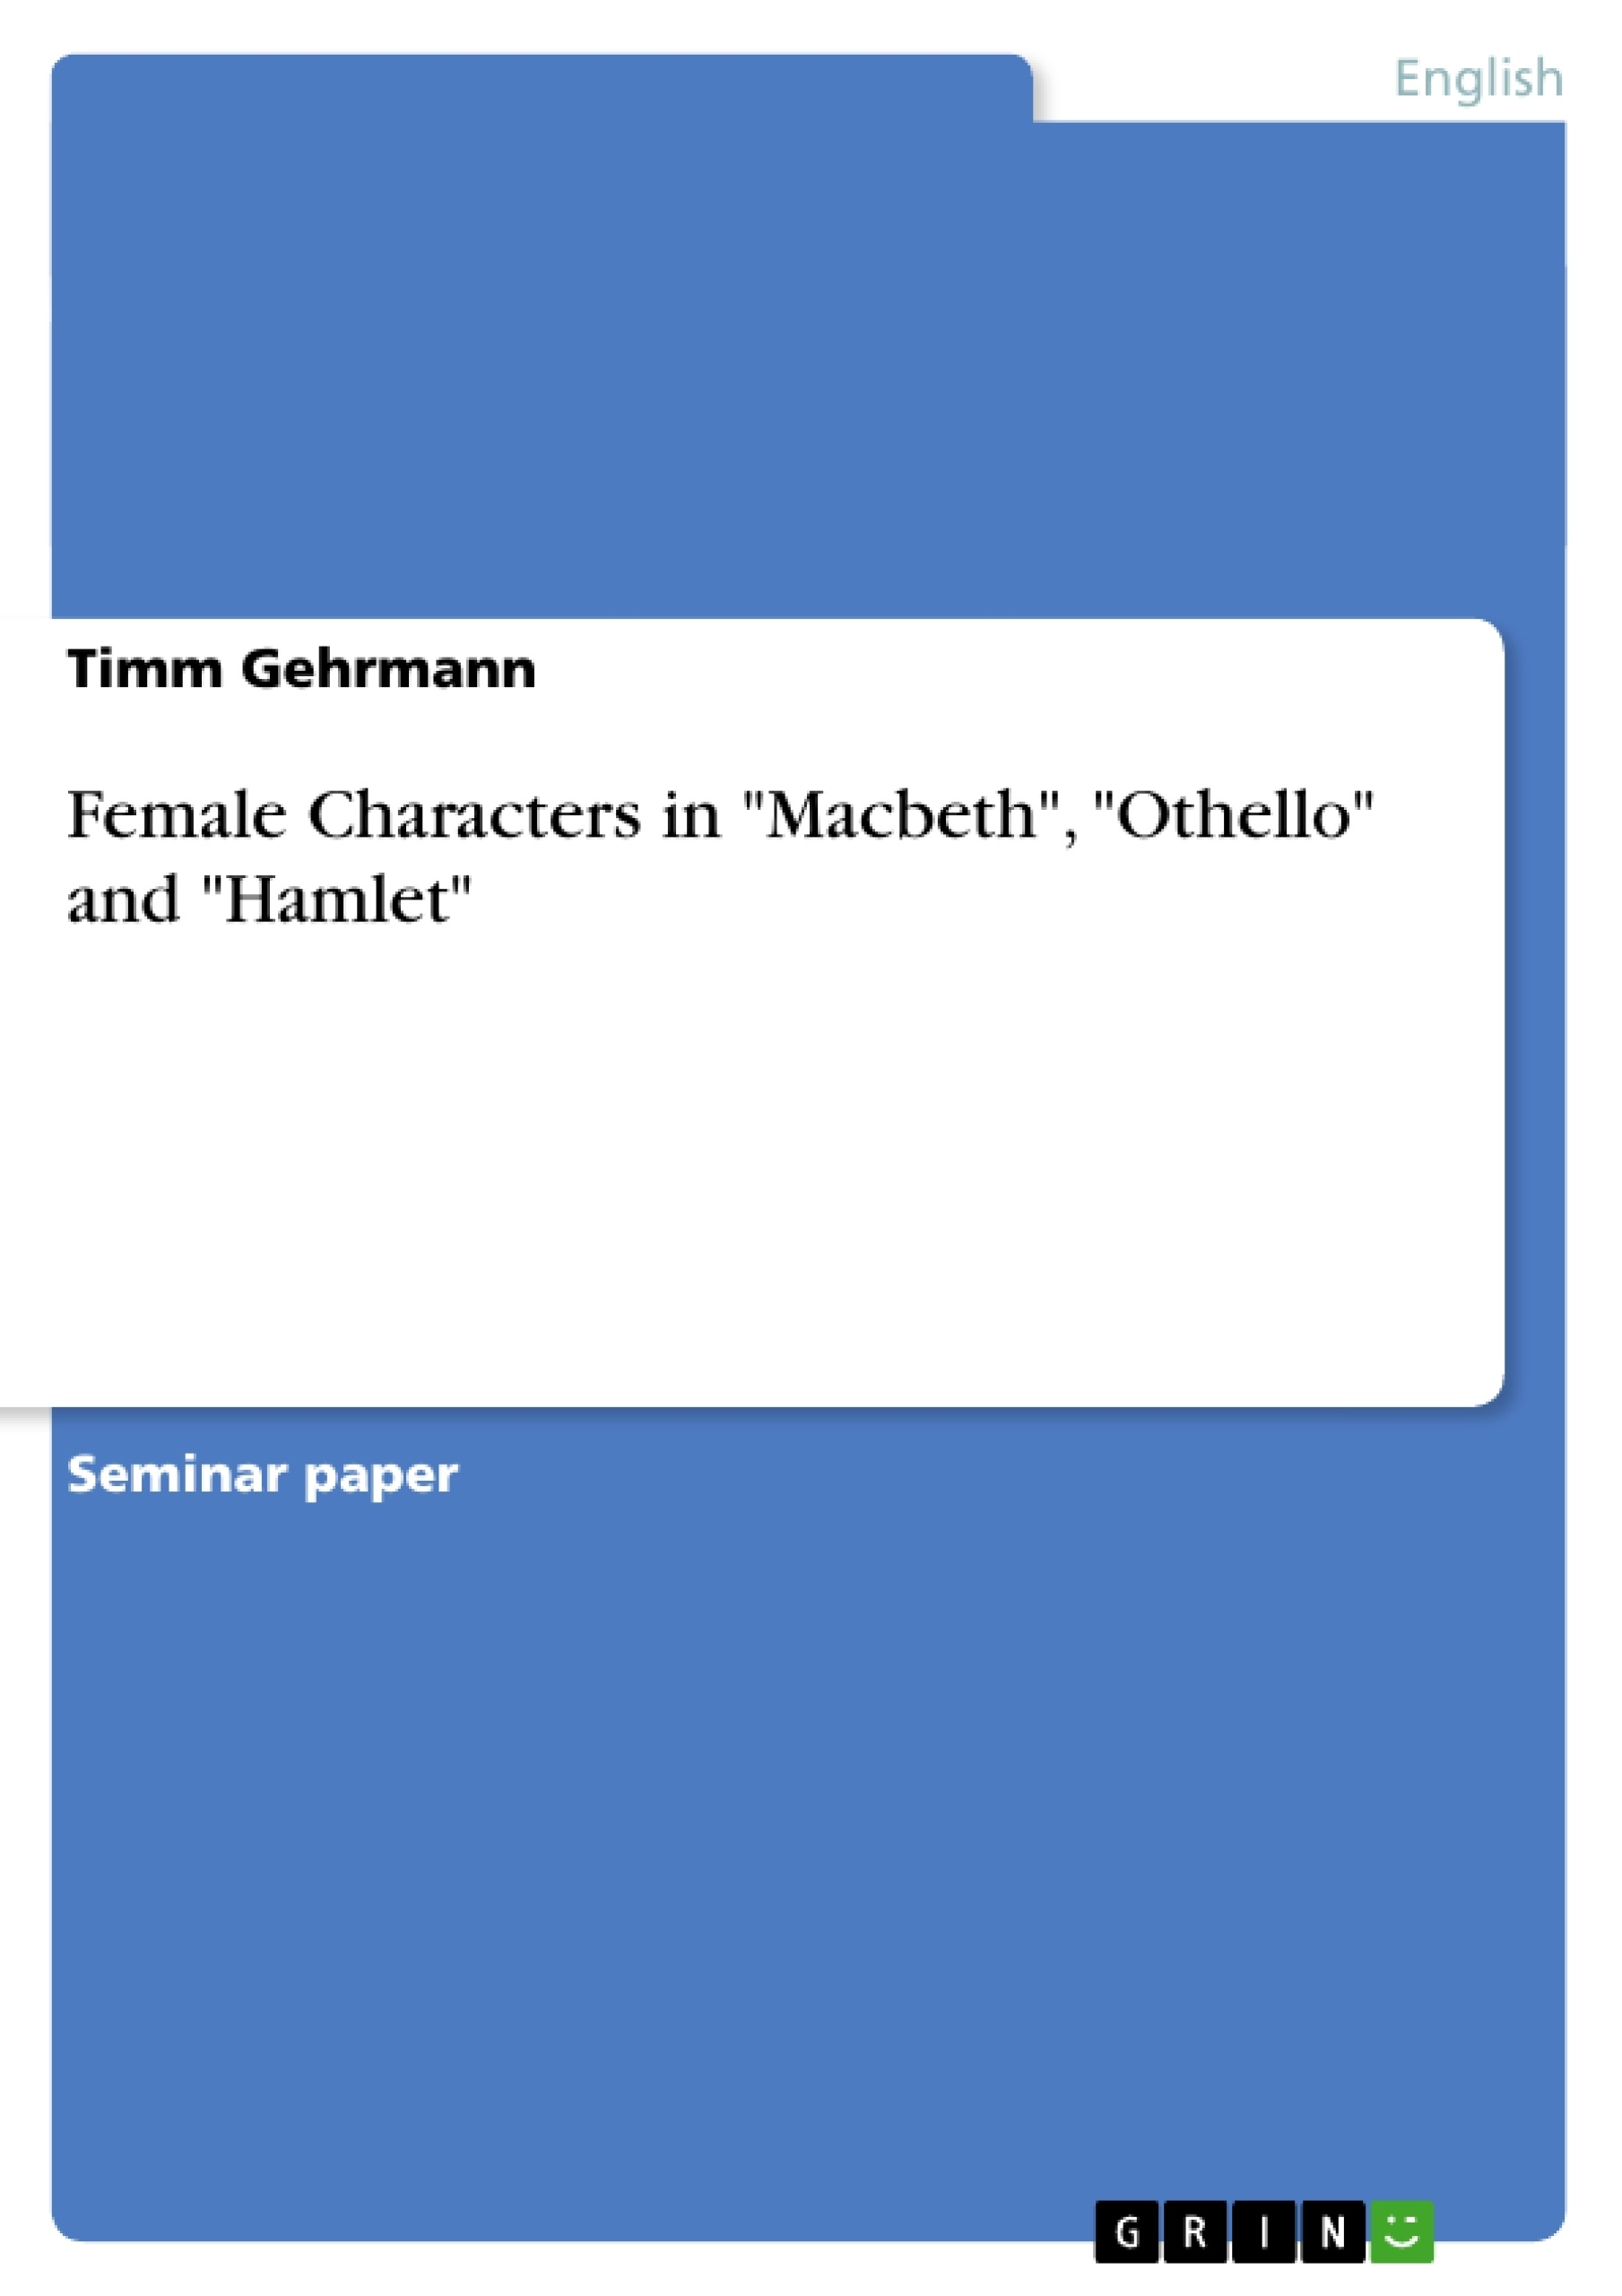 """Title: Female Characters in """"Macbeth"""", """"Othello"""" and """"Hamlet"""""""